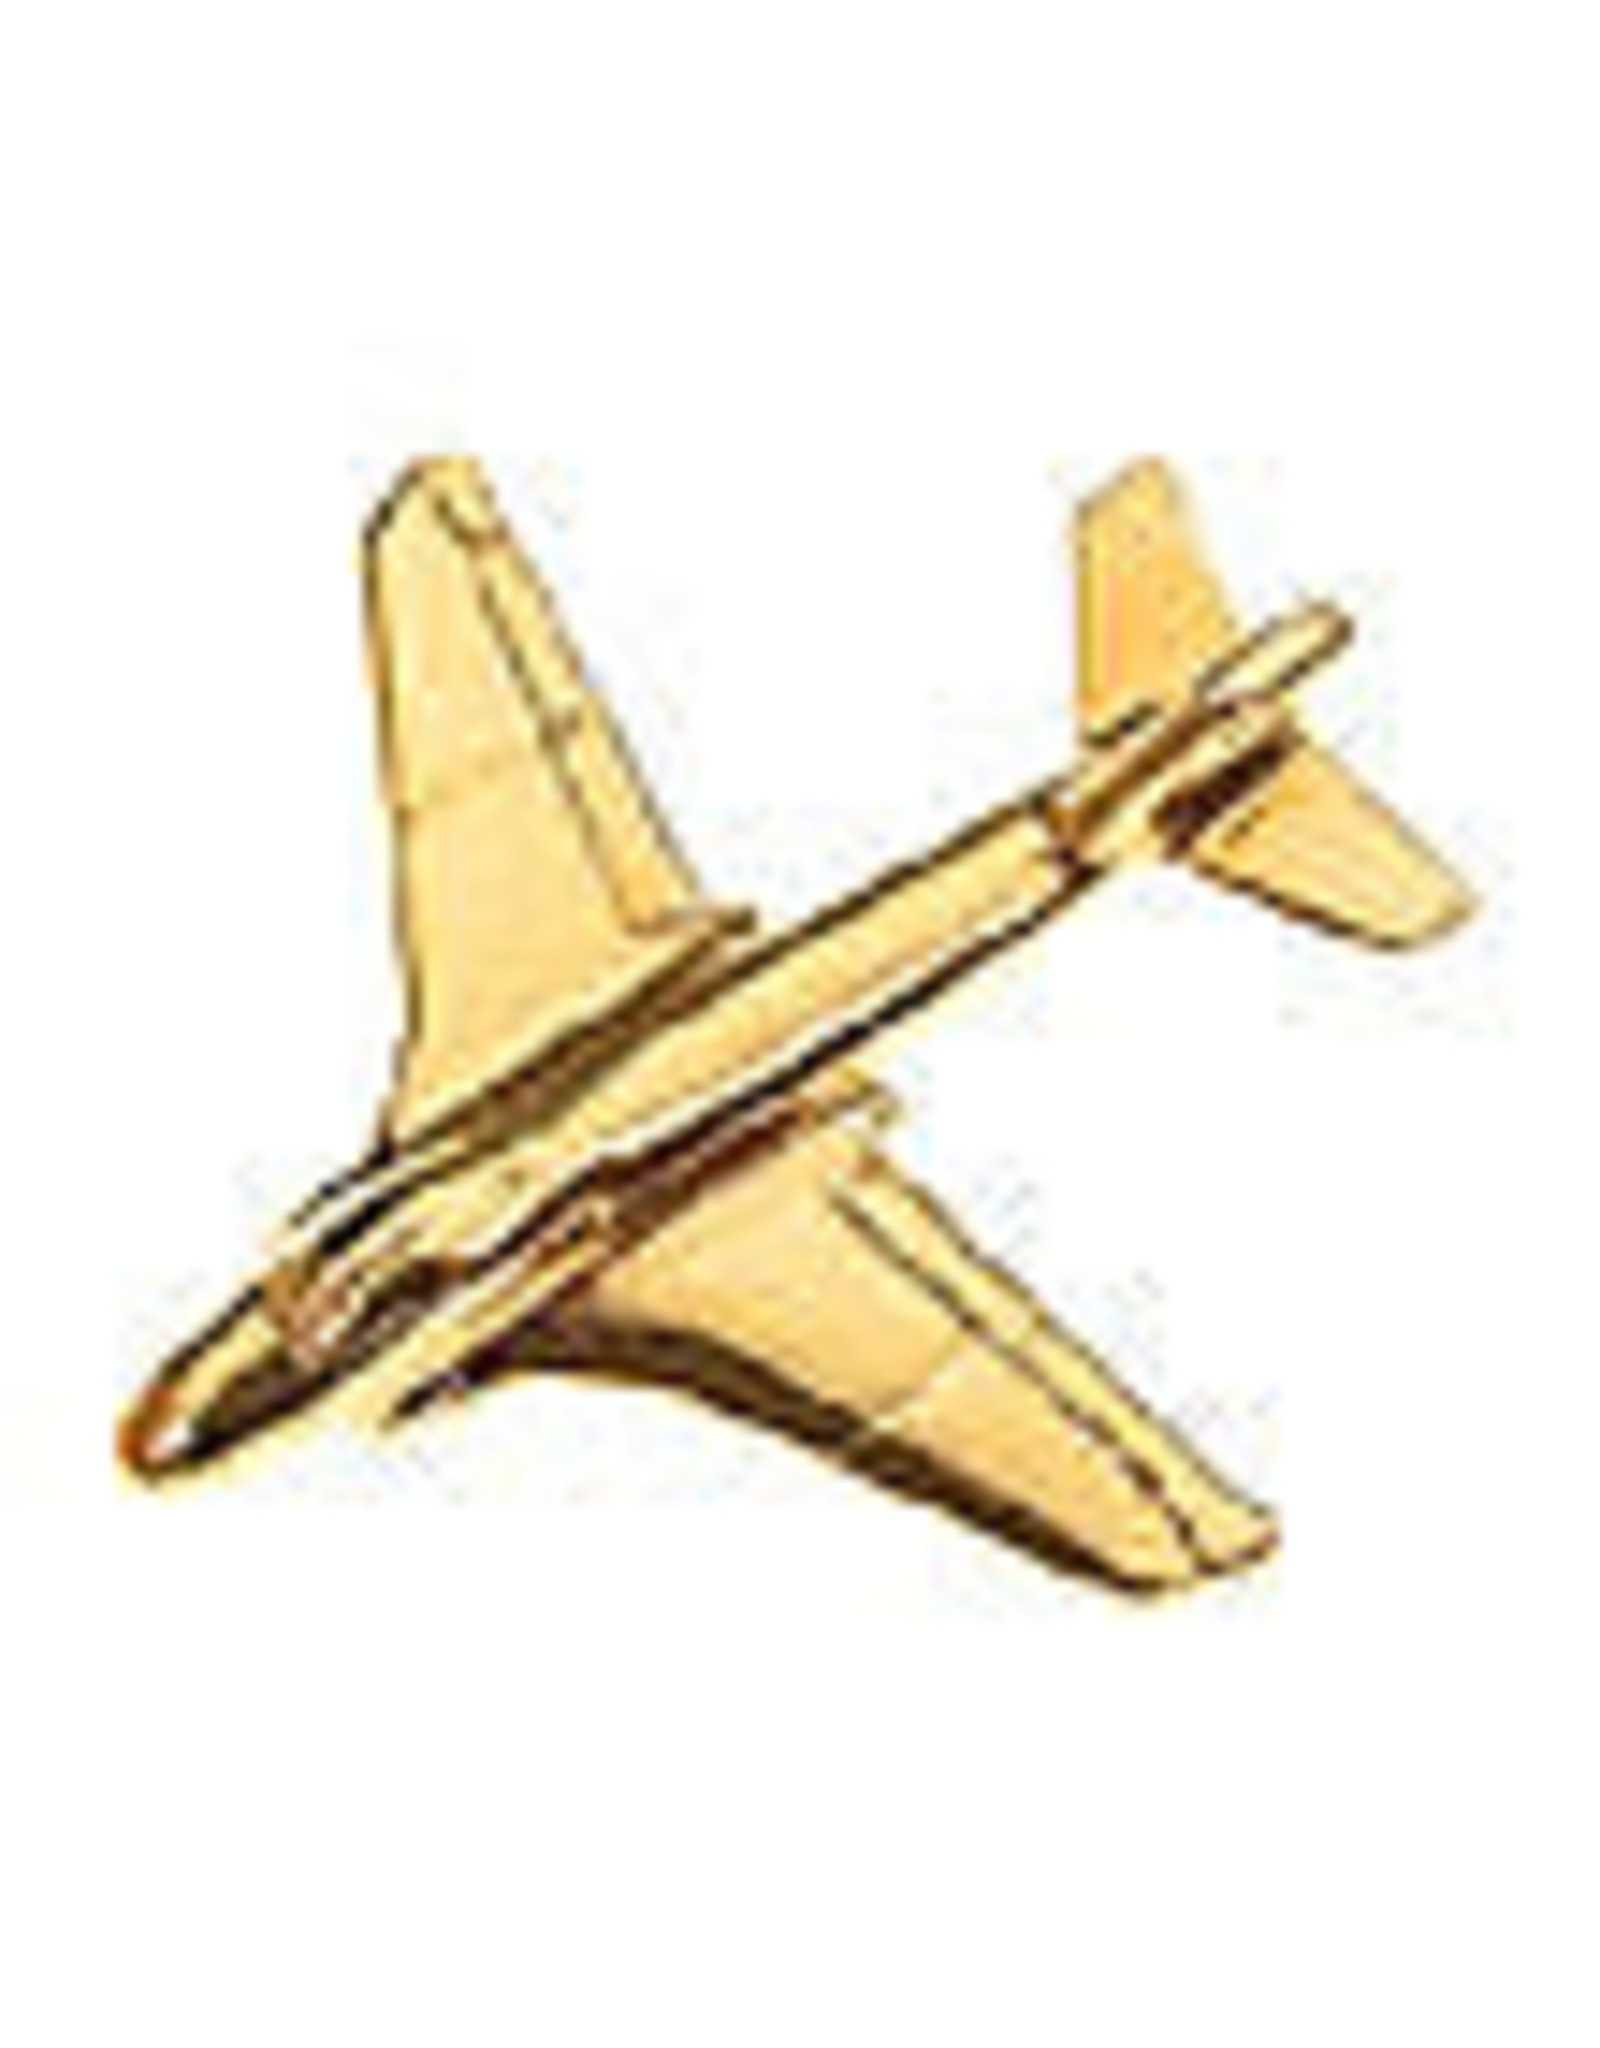 Clivedon Pin Badge A-6 Intruder, Pin, Gold